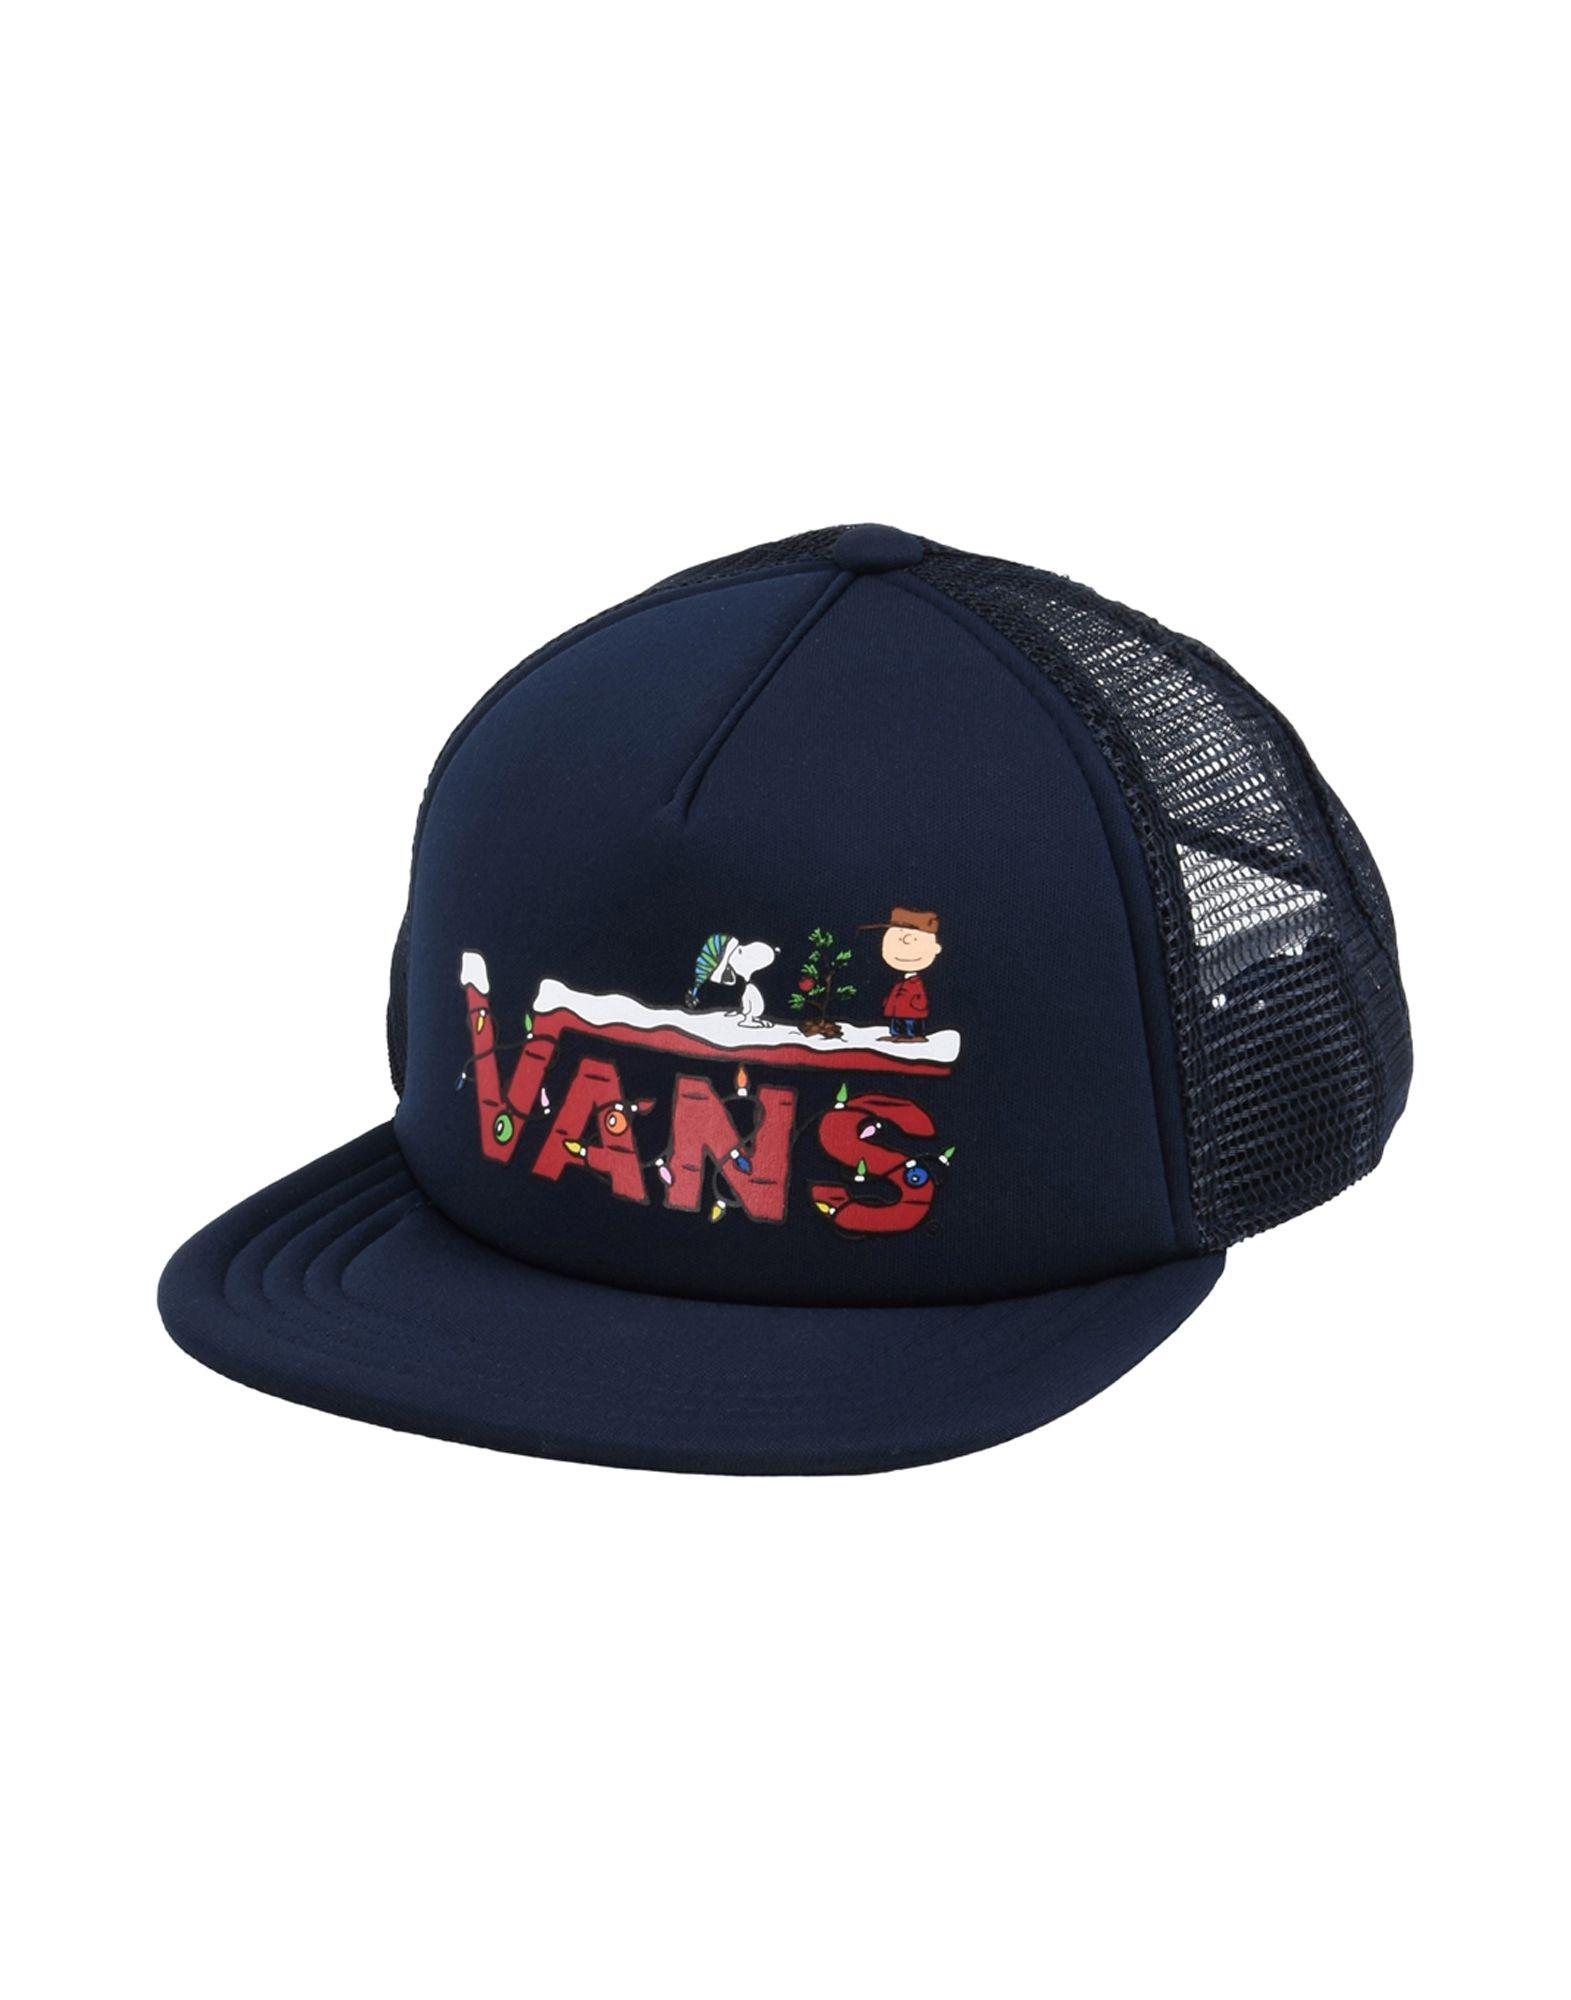 Vans - Blue Hat for Men - Lyst. View fullscreen 2b0e24a4b36b